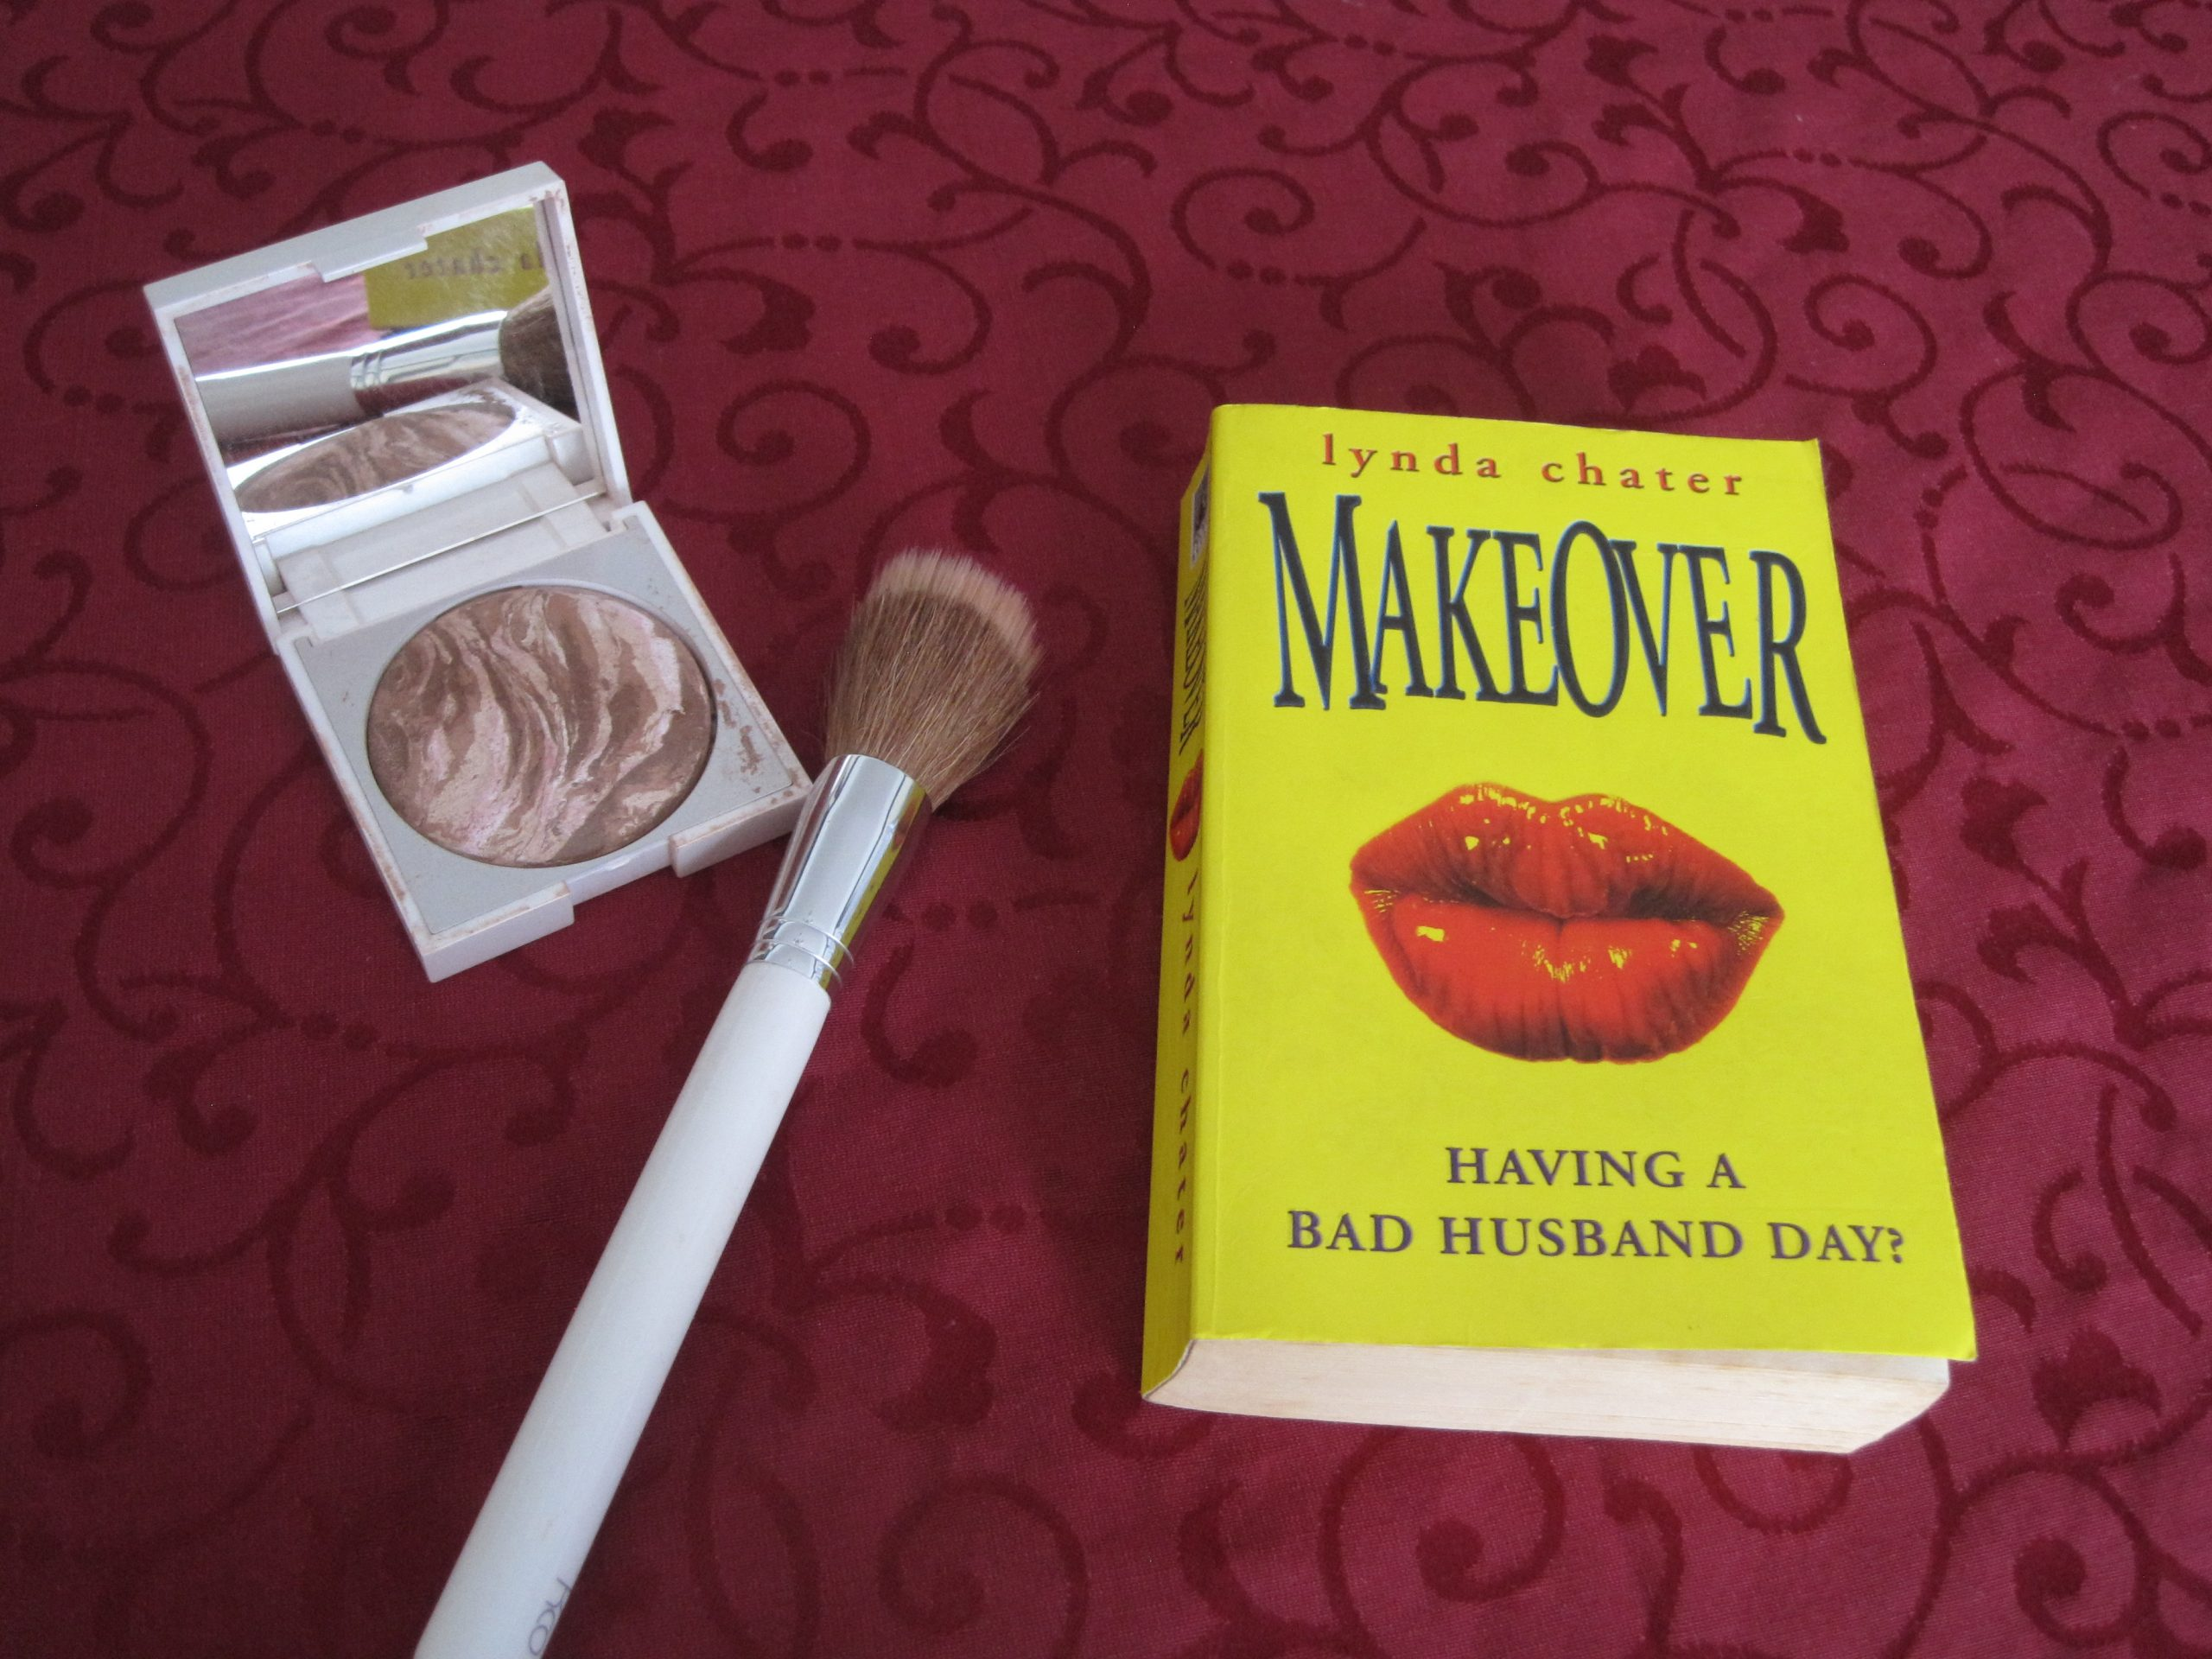 Makeover photo by Juliamaud